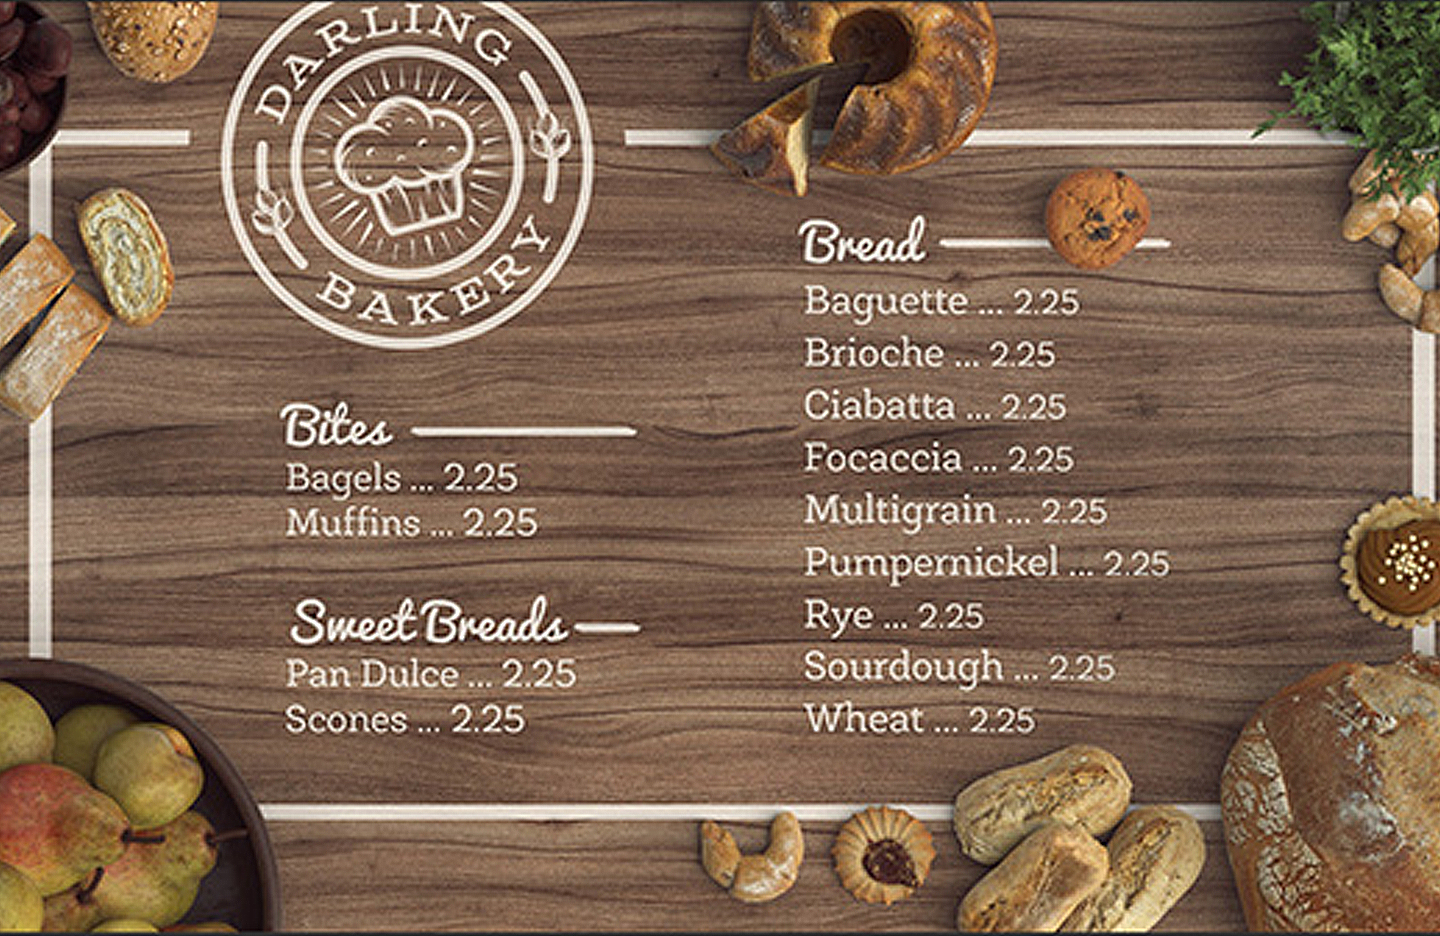 Design and mock up a tasty bakery menu design cuts design and mock up a tasty bakery menu thecheapjerseys Images